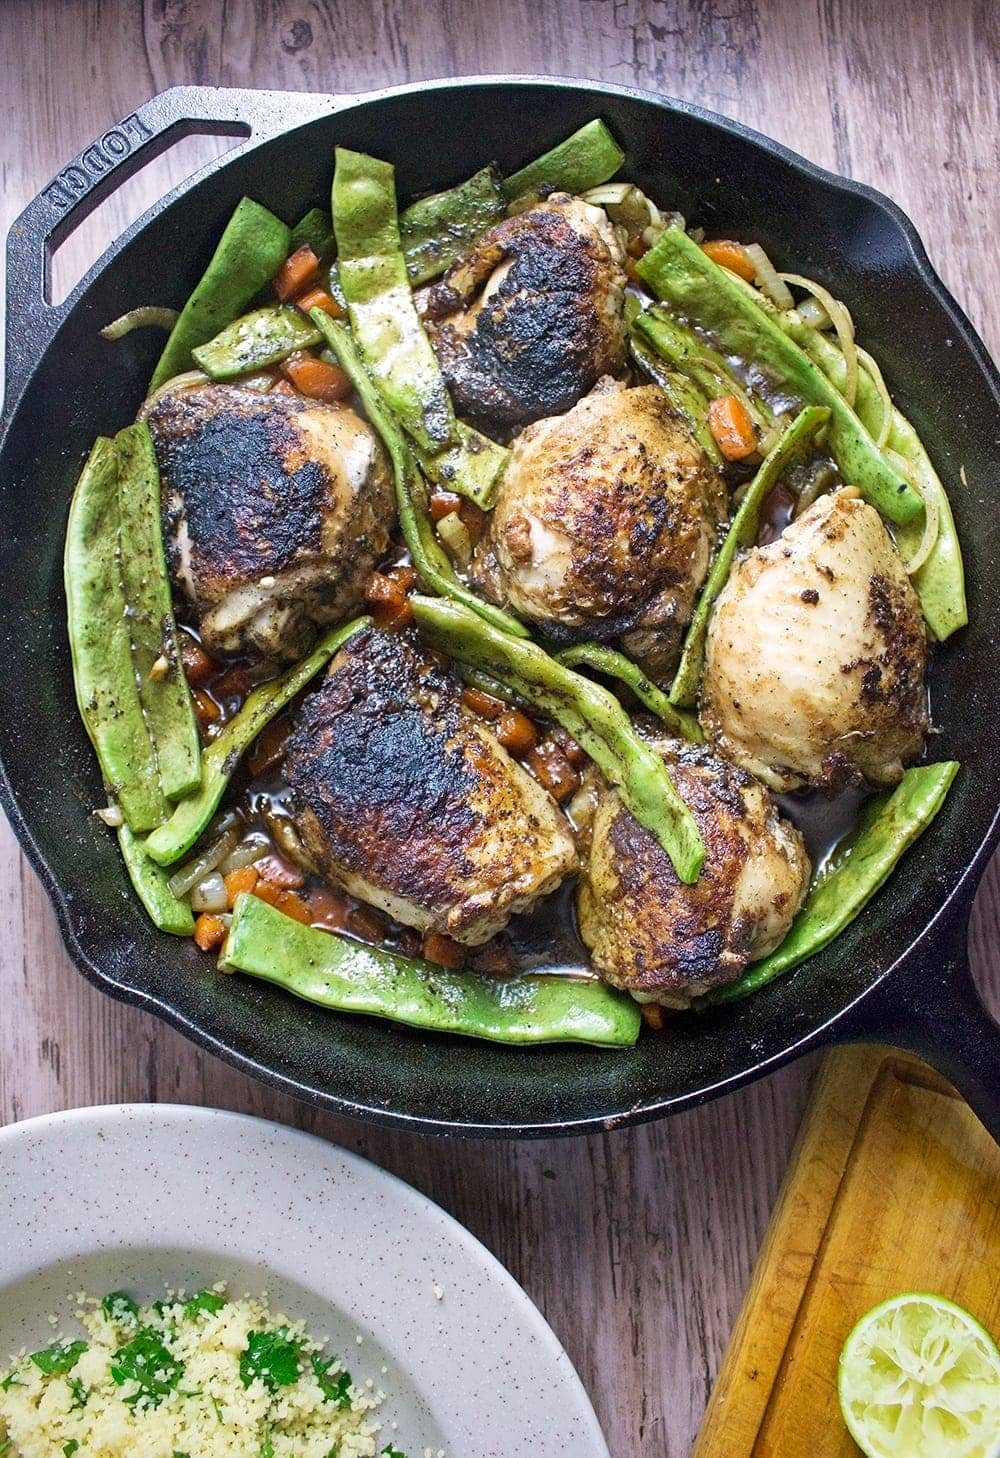 This berbere chicken recipe is bursting with flavour. It's quick and easy to put together and tastes amazing served over lime & parsley cous cous!